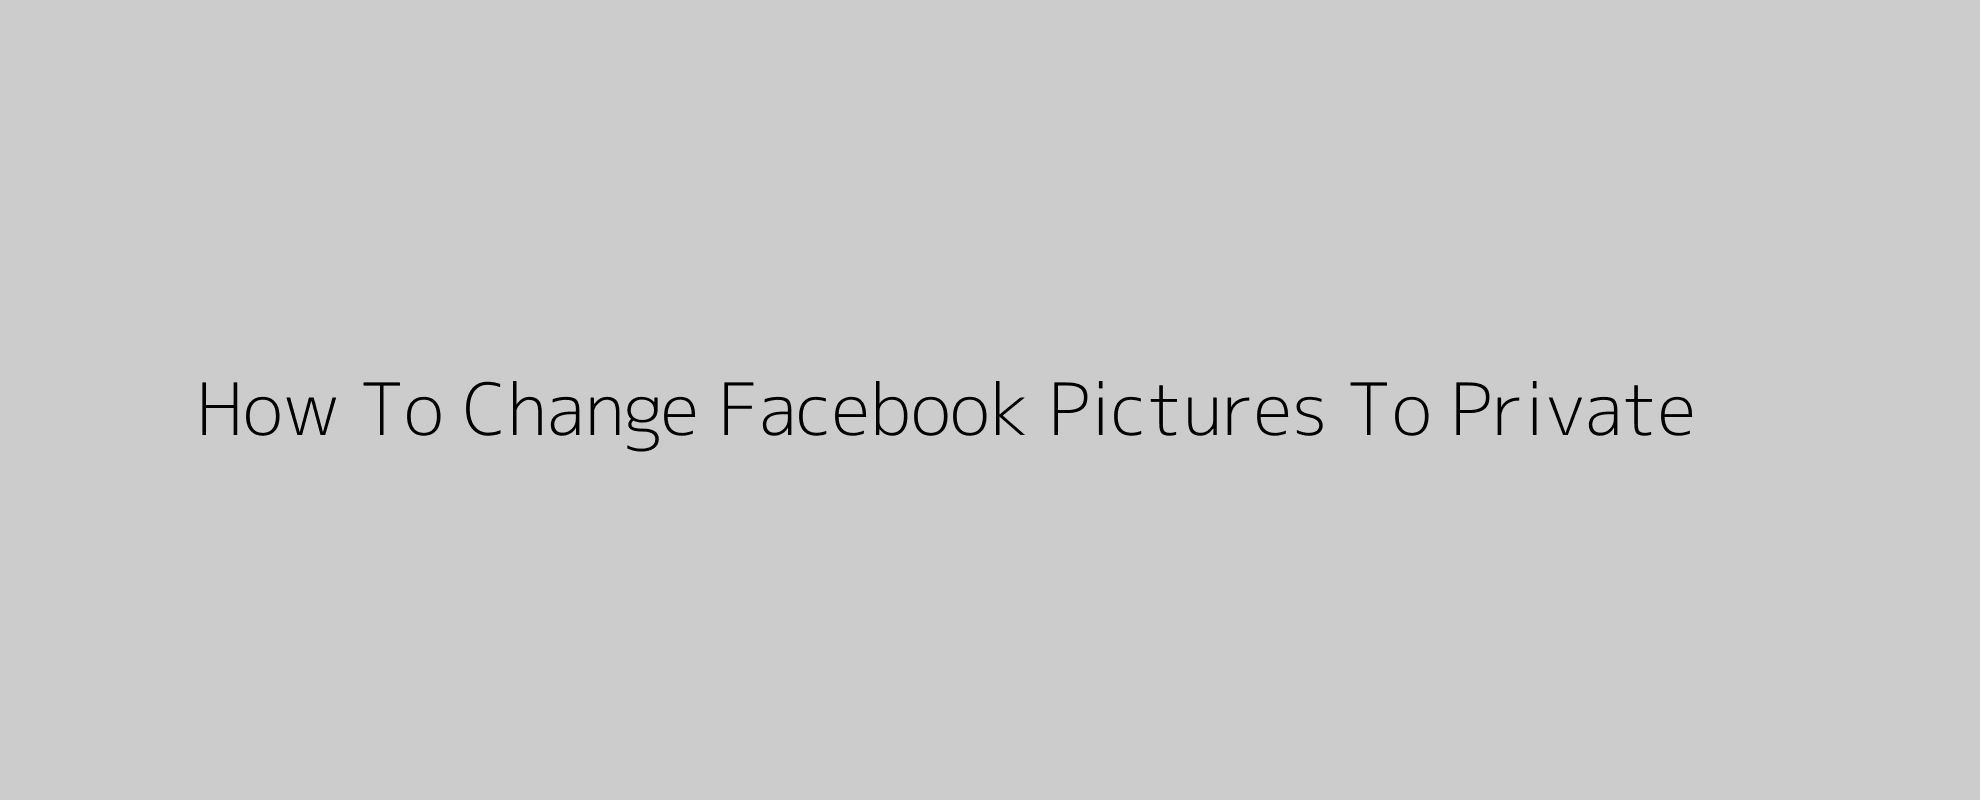 How To Change Facebook Pictures To Private